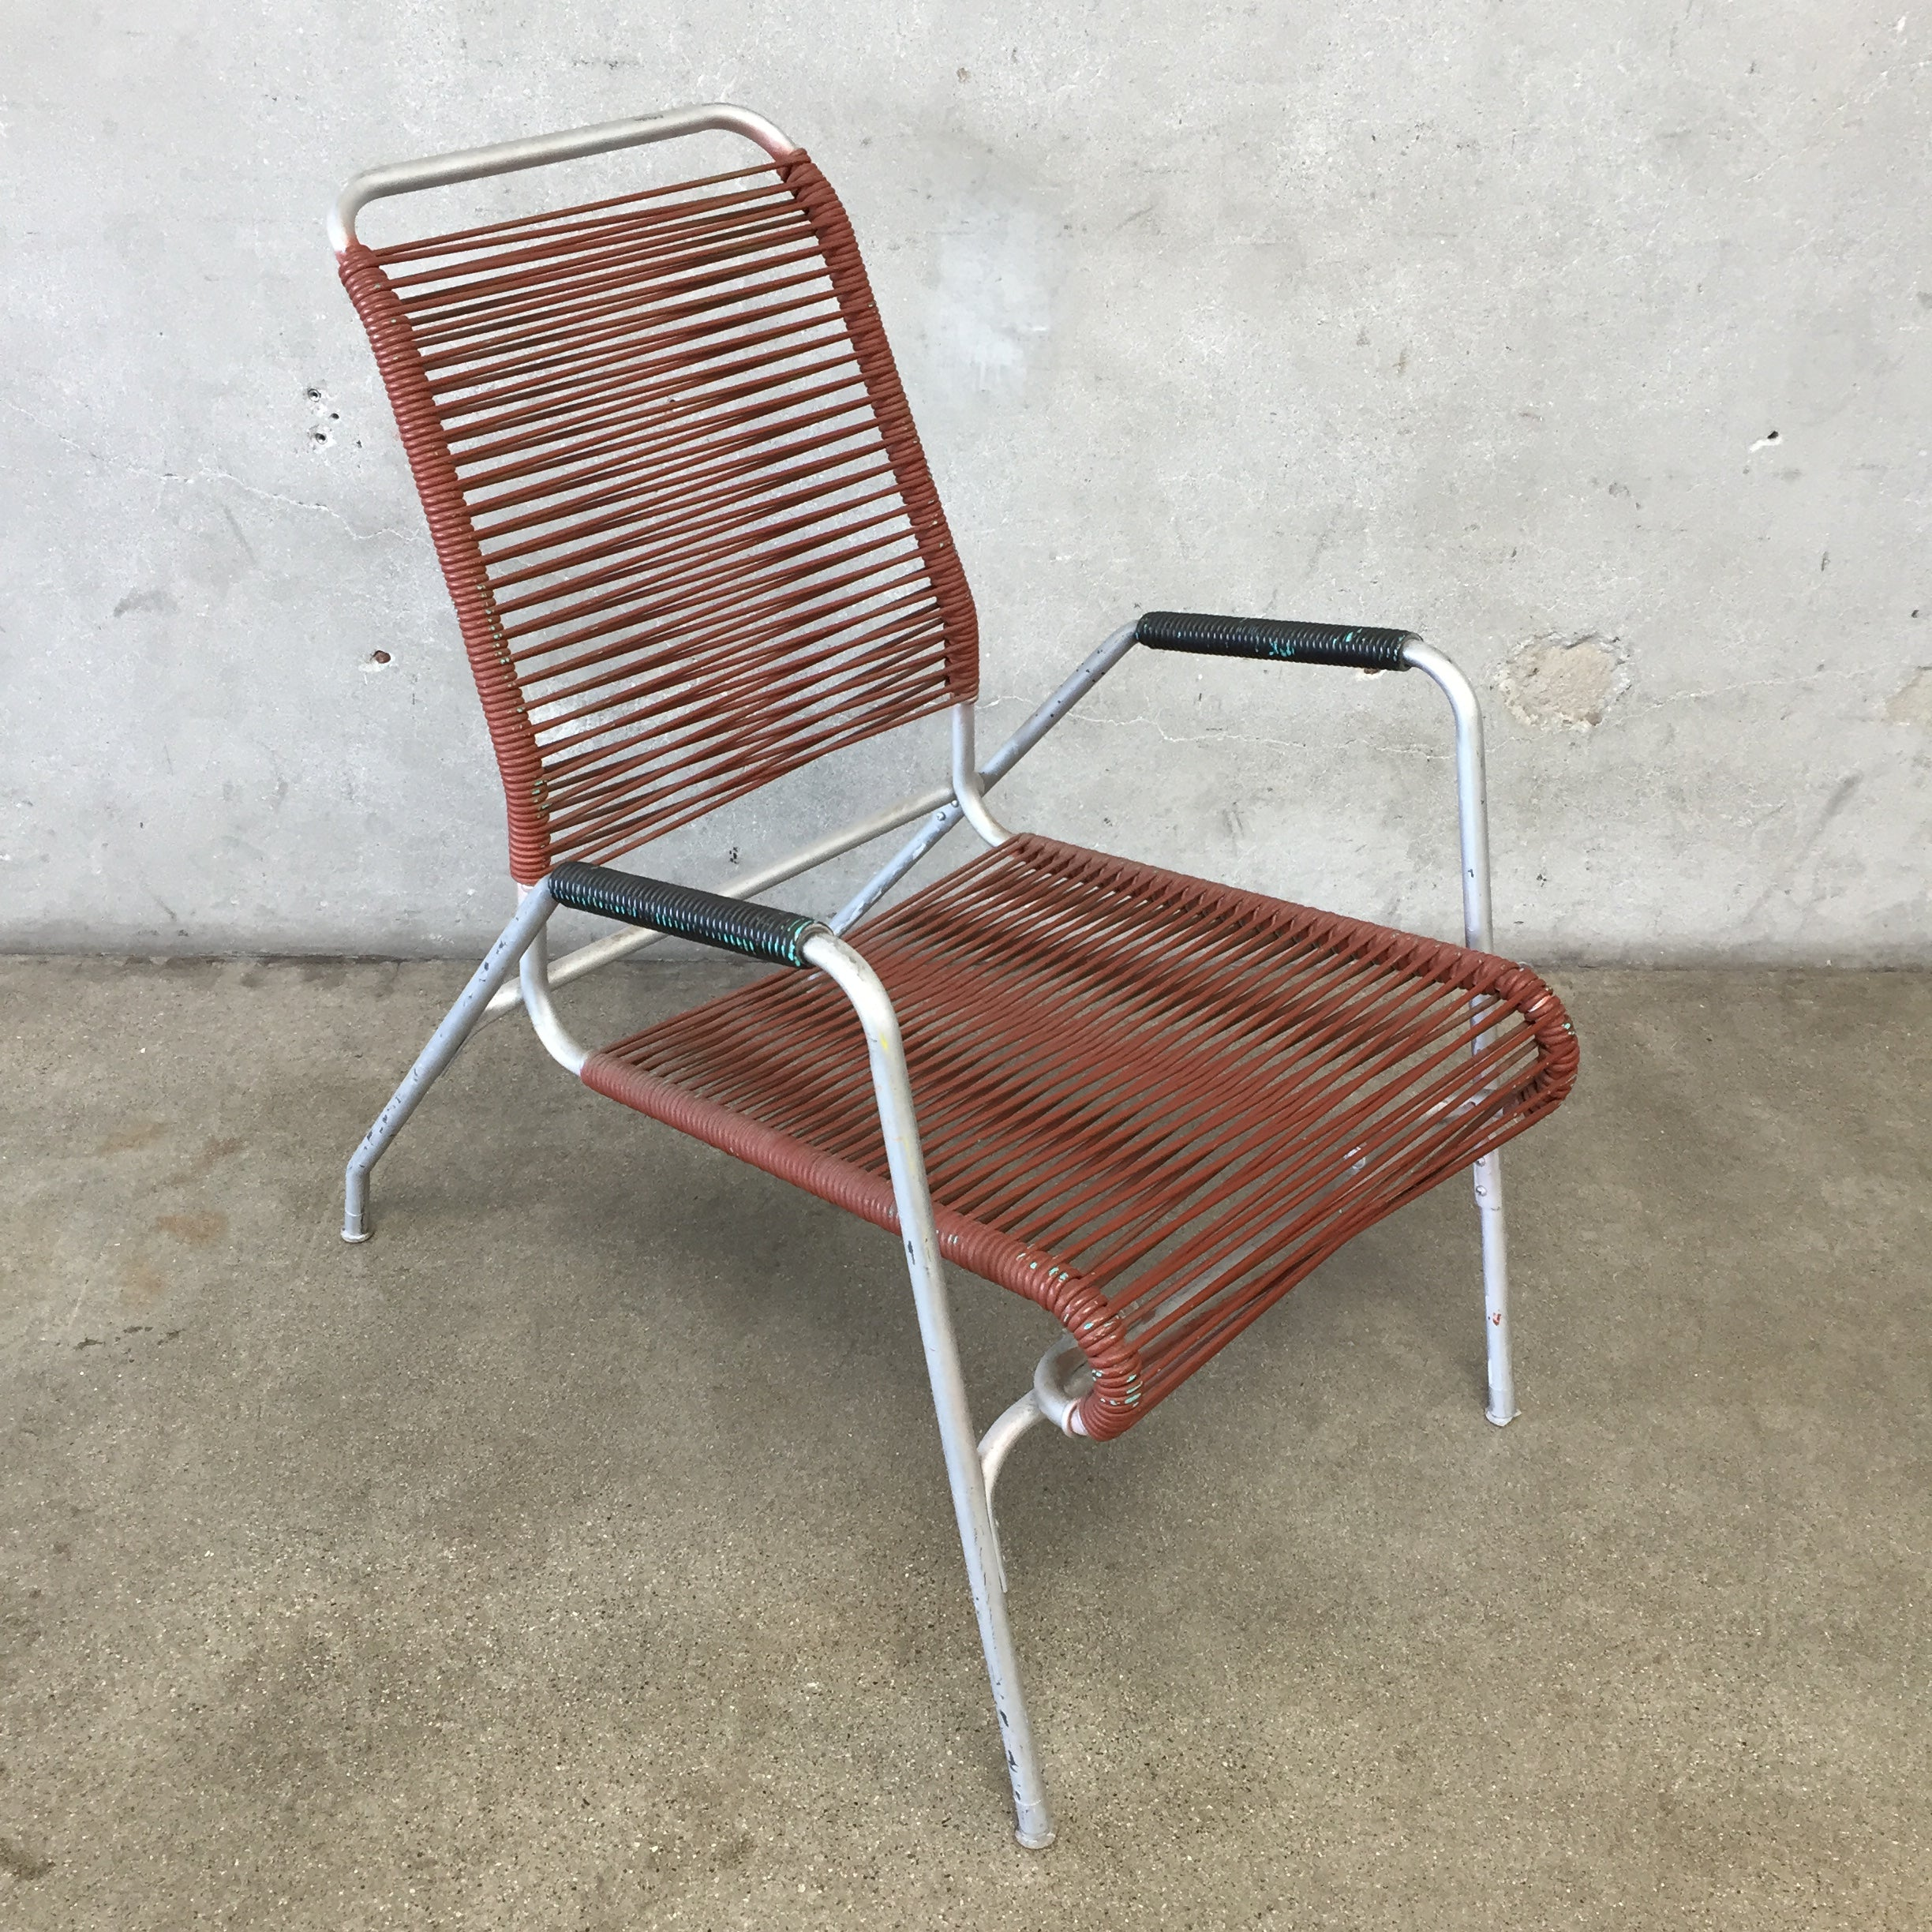 summerland attachment country finding town mint vintage outdoor furniture patio furnitures